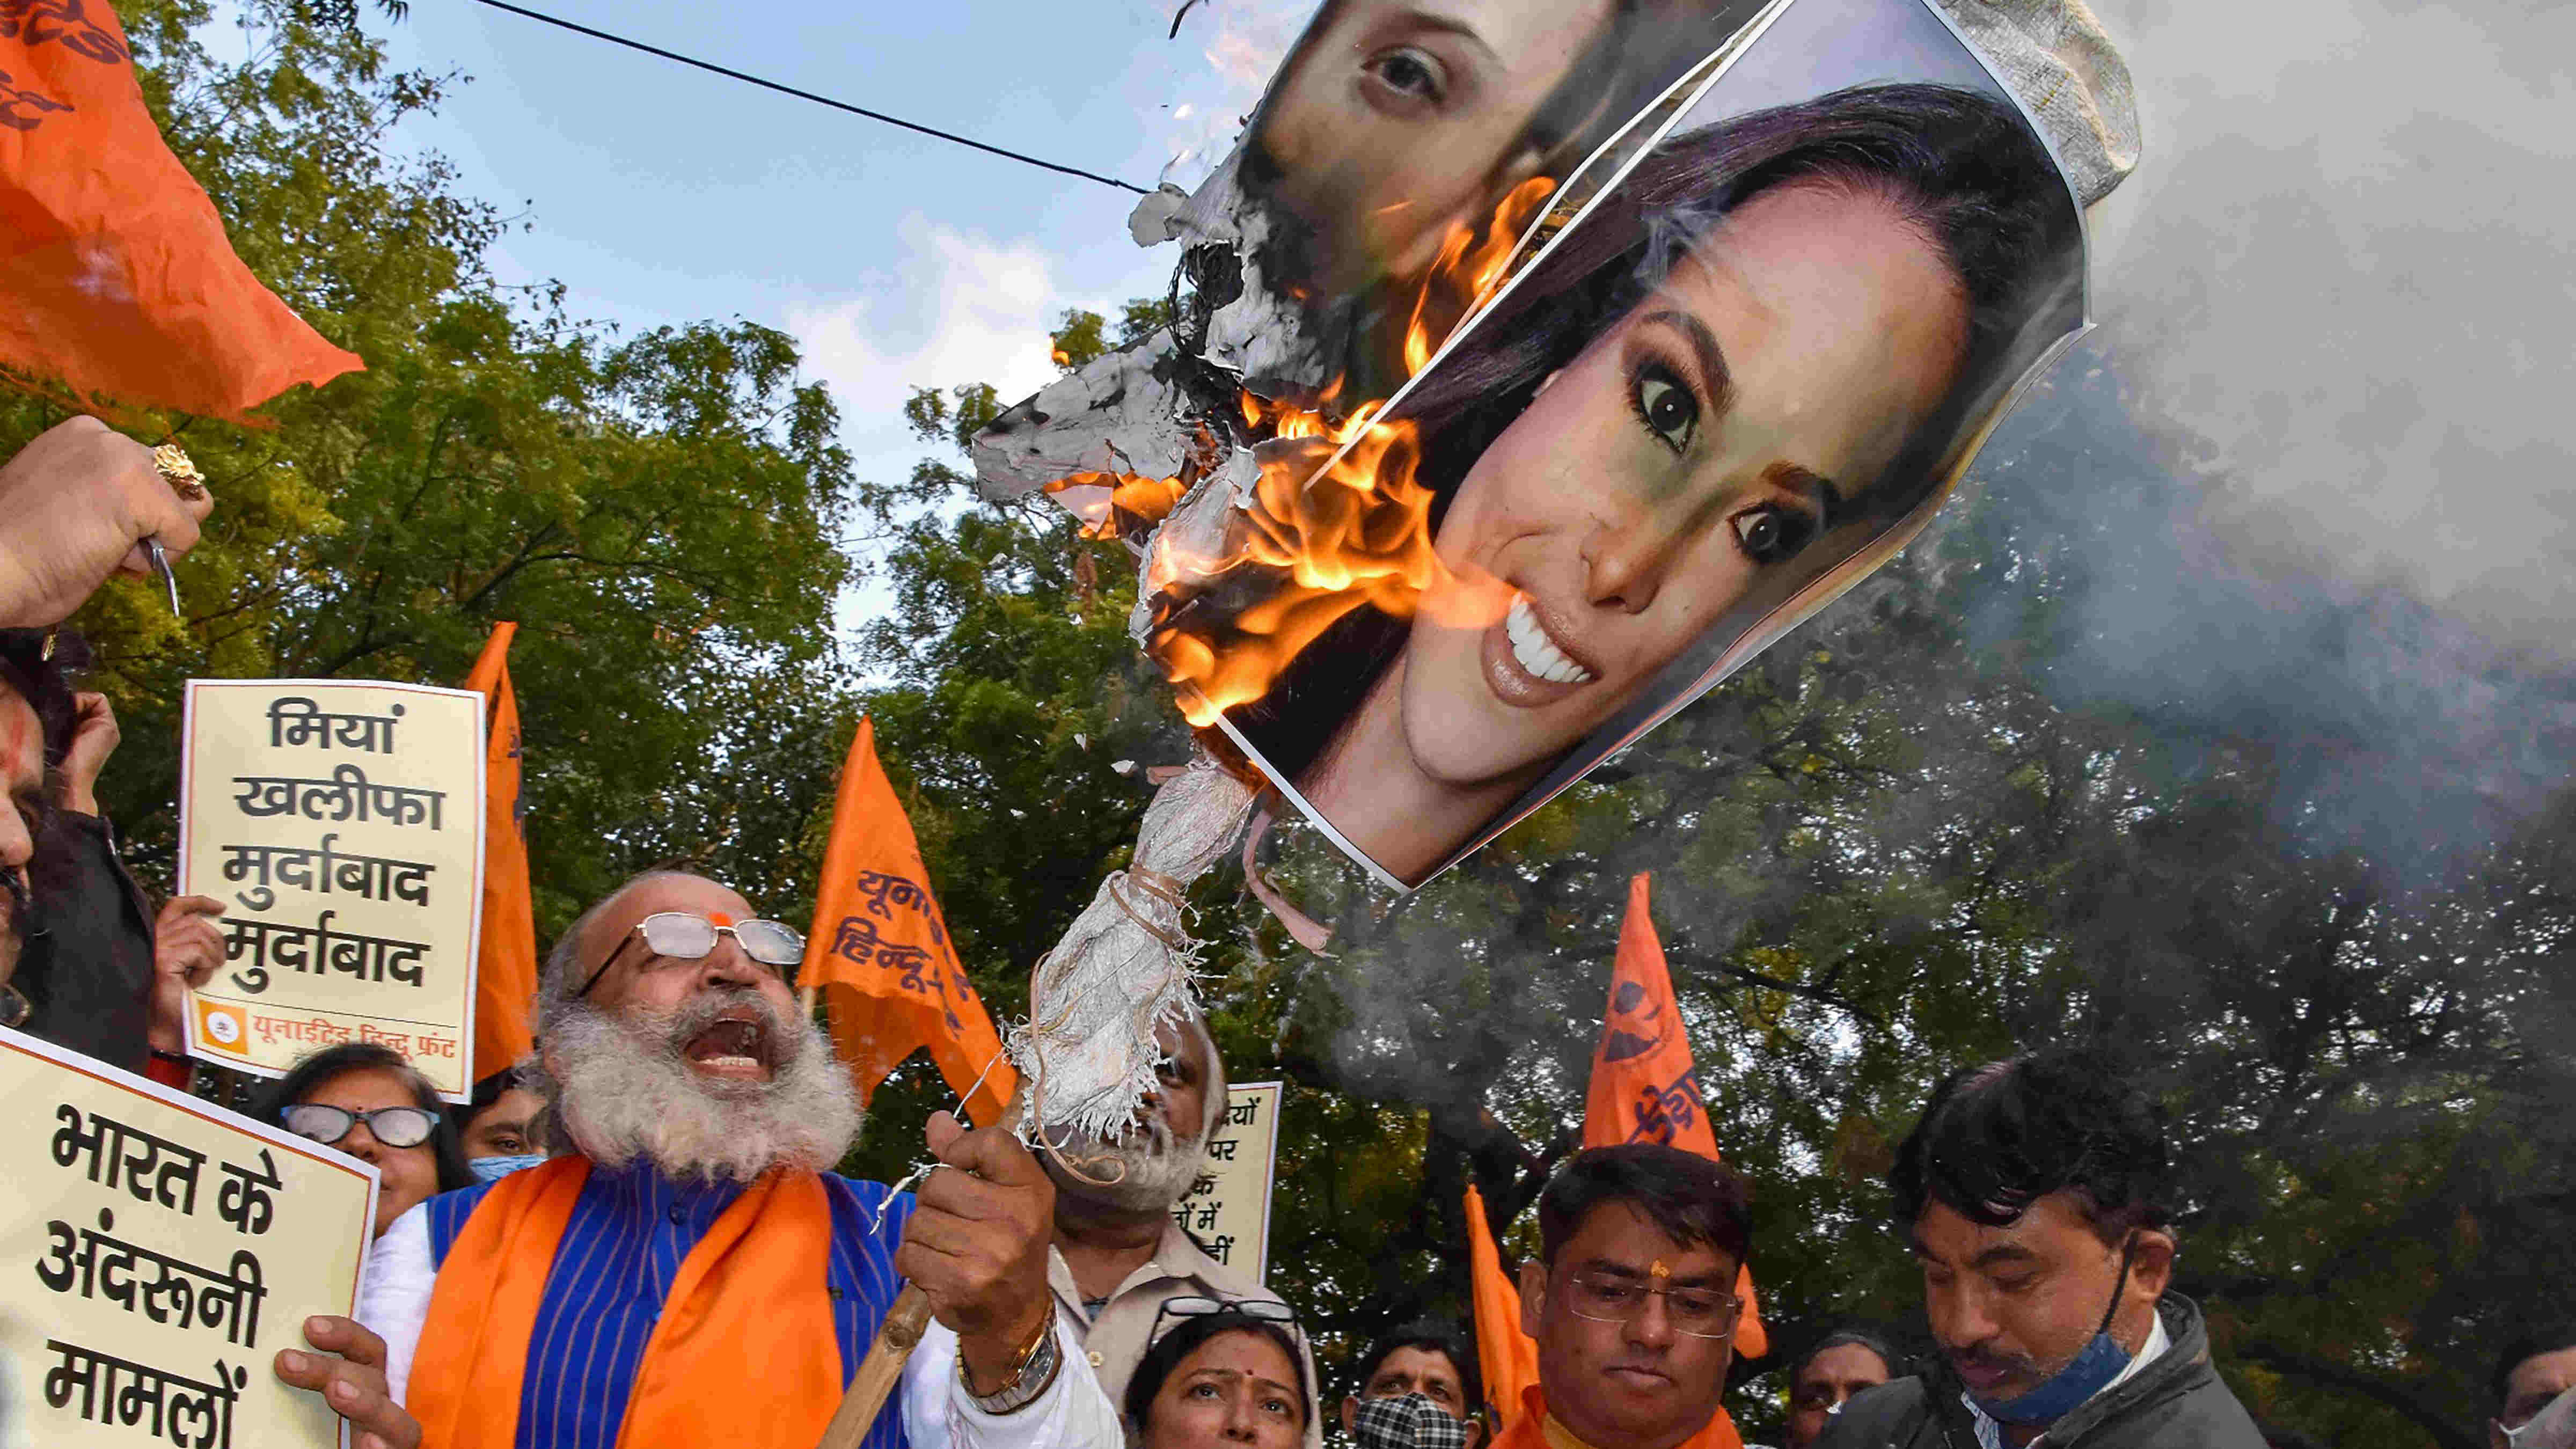 United Hindu Front supporters burn posters of international activists and celebrities, who supported the ongoing farmers protest against the new farm laws, at Jantar Mantar in New Delhi, Thursday, Feb. 4, 2021.